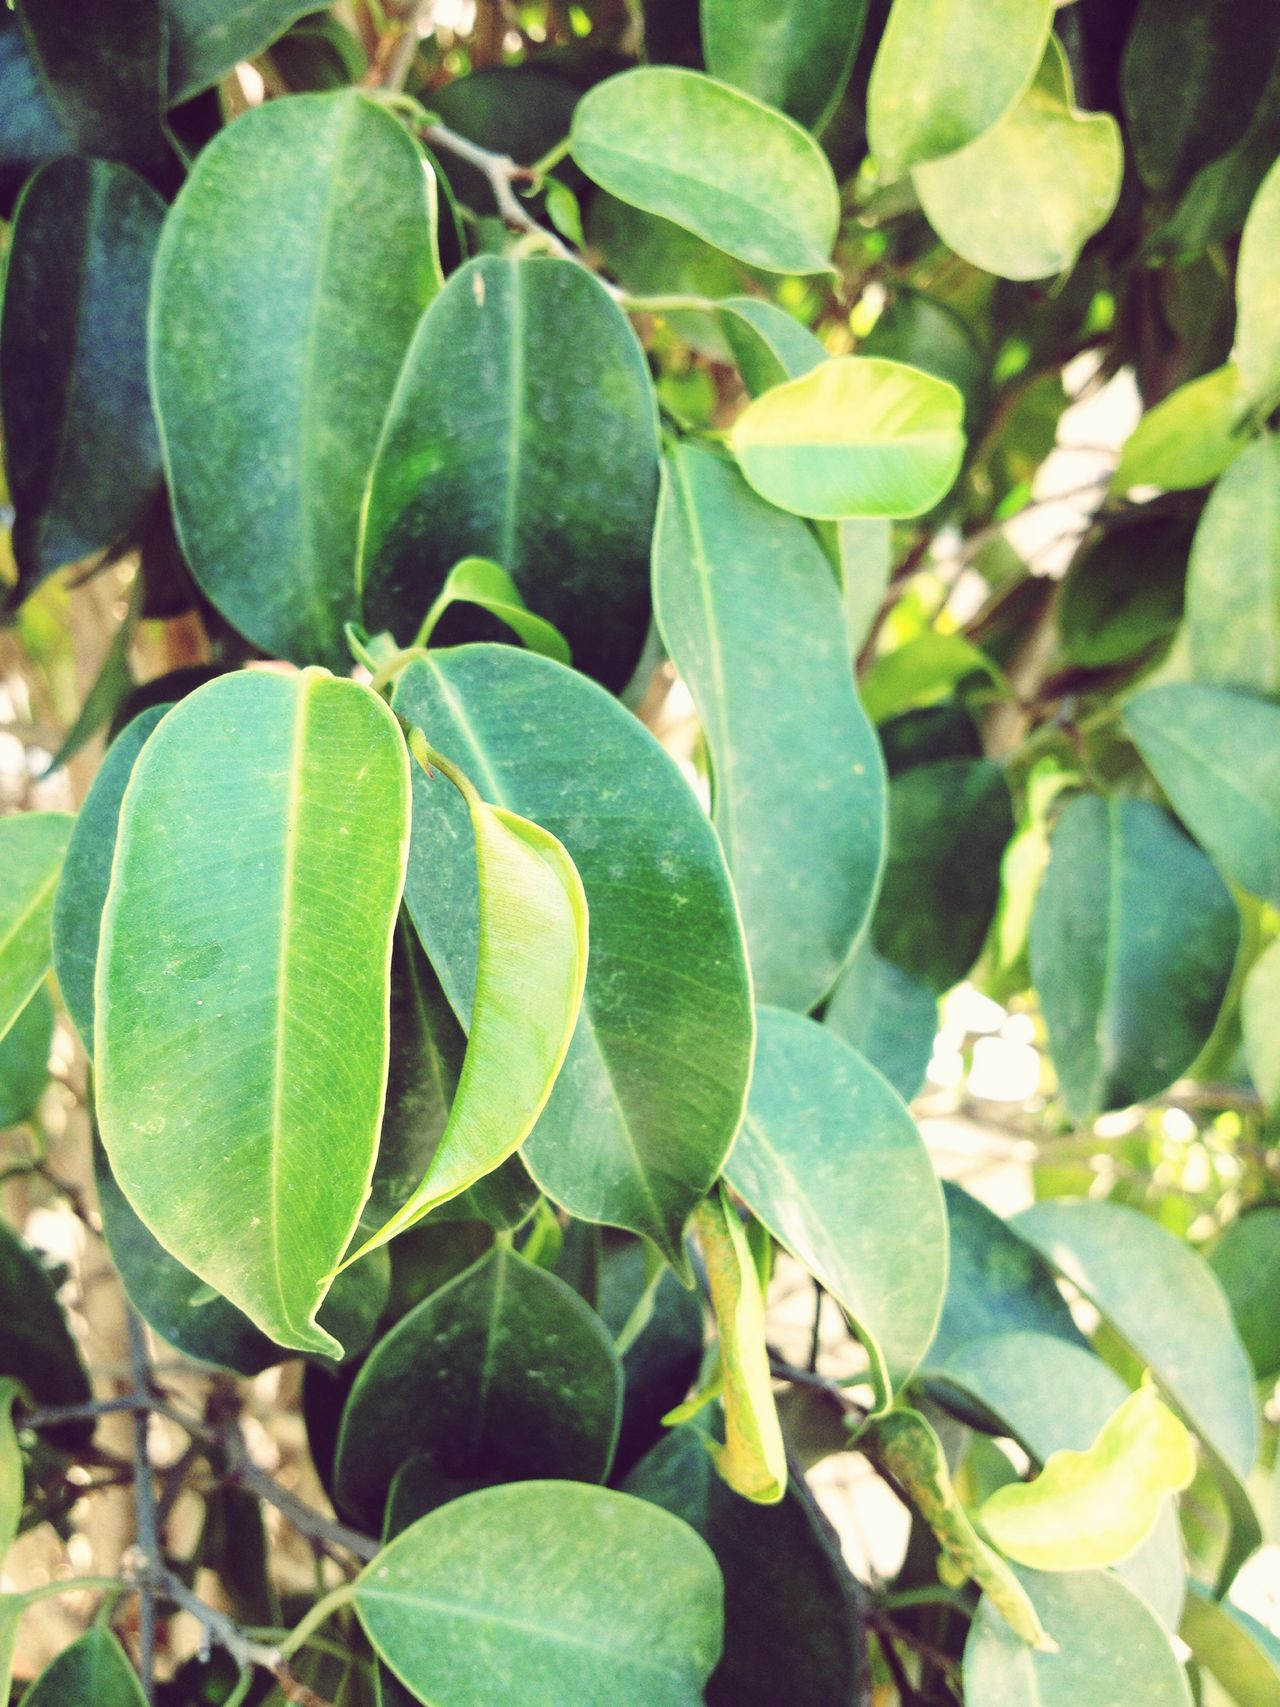 Anything can be as simple as leaves, the question is do you want it to be? Growth Leaf Freshness Focus On Foreground Nature Green Color Tree Growing Food And Drink No People Outdoors Day Close-up Fruit Food Beauty In Nature Unripe Olive Tree Orange Tree EyeEmNewHere